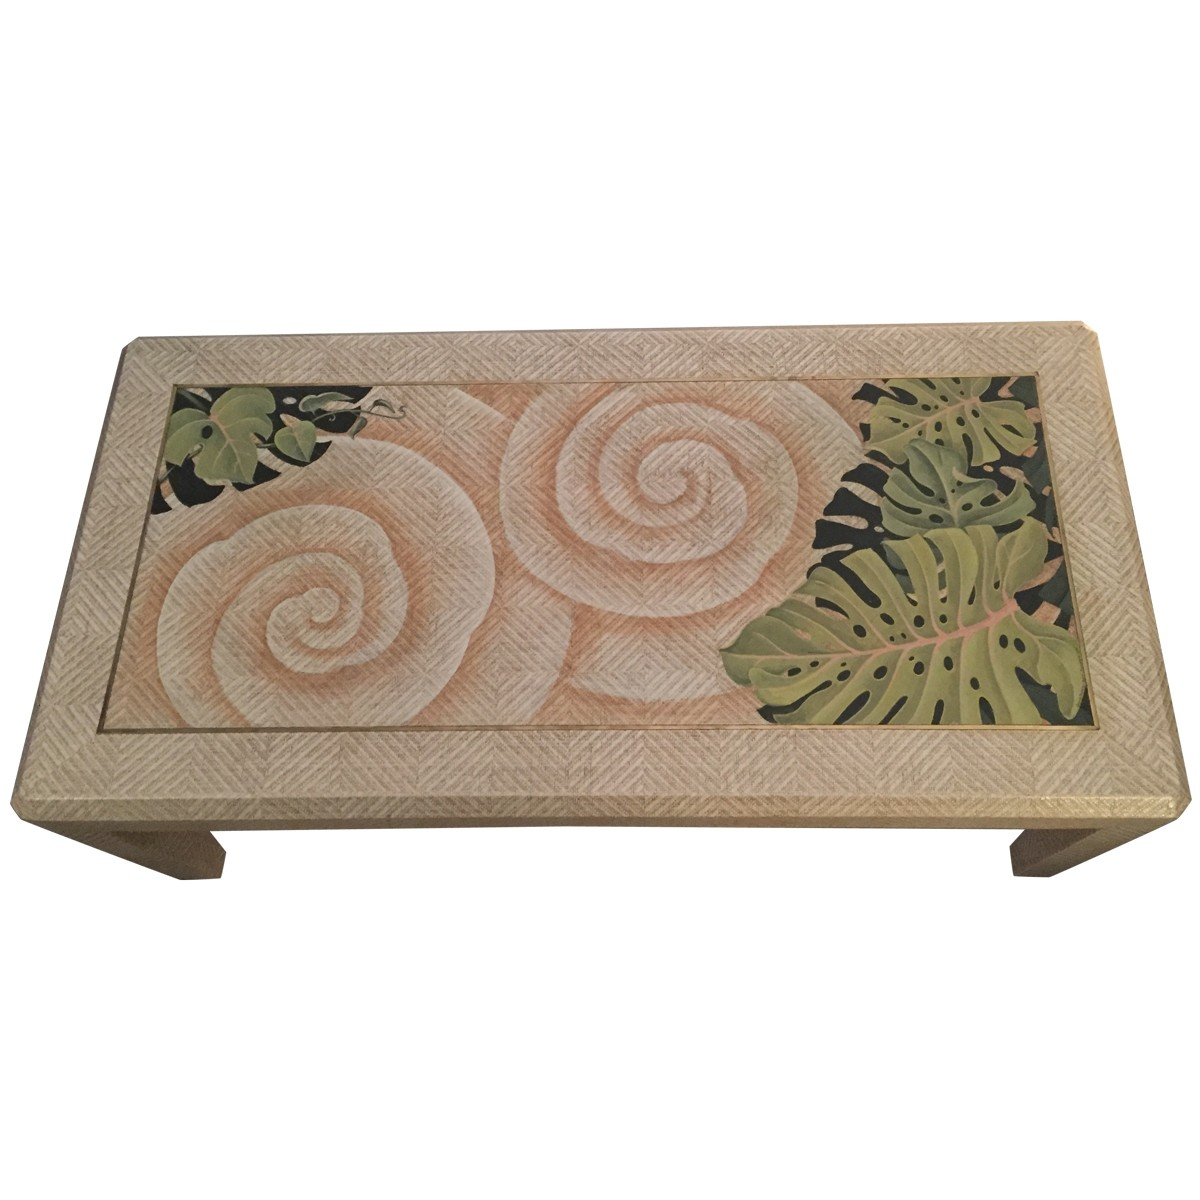 VINTAGE Hand Painted Coffee Table With Brass Inlay U2013 9326